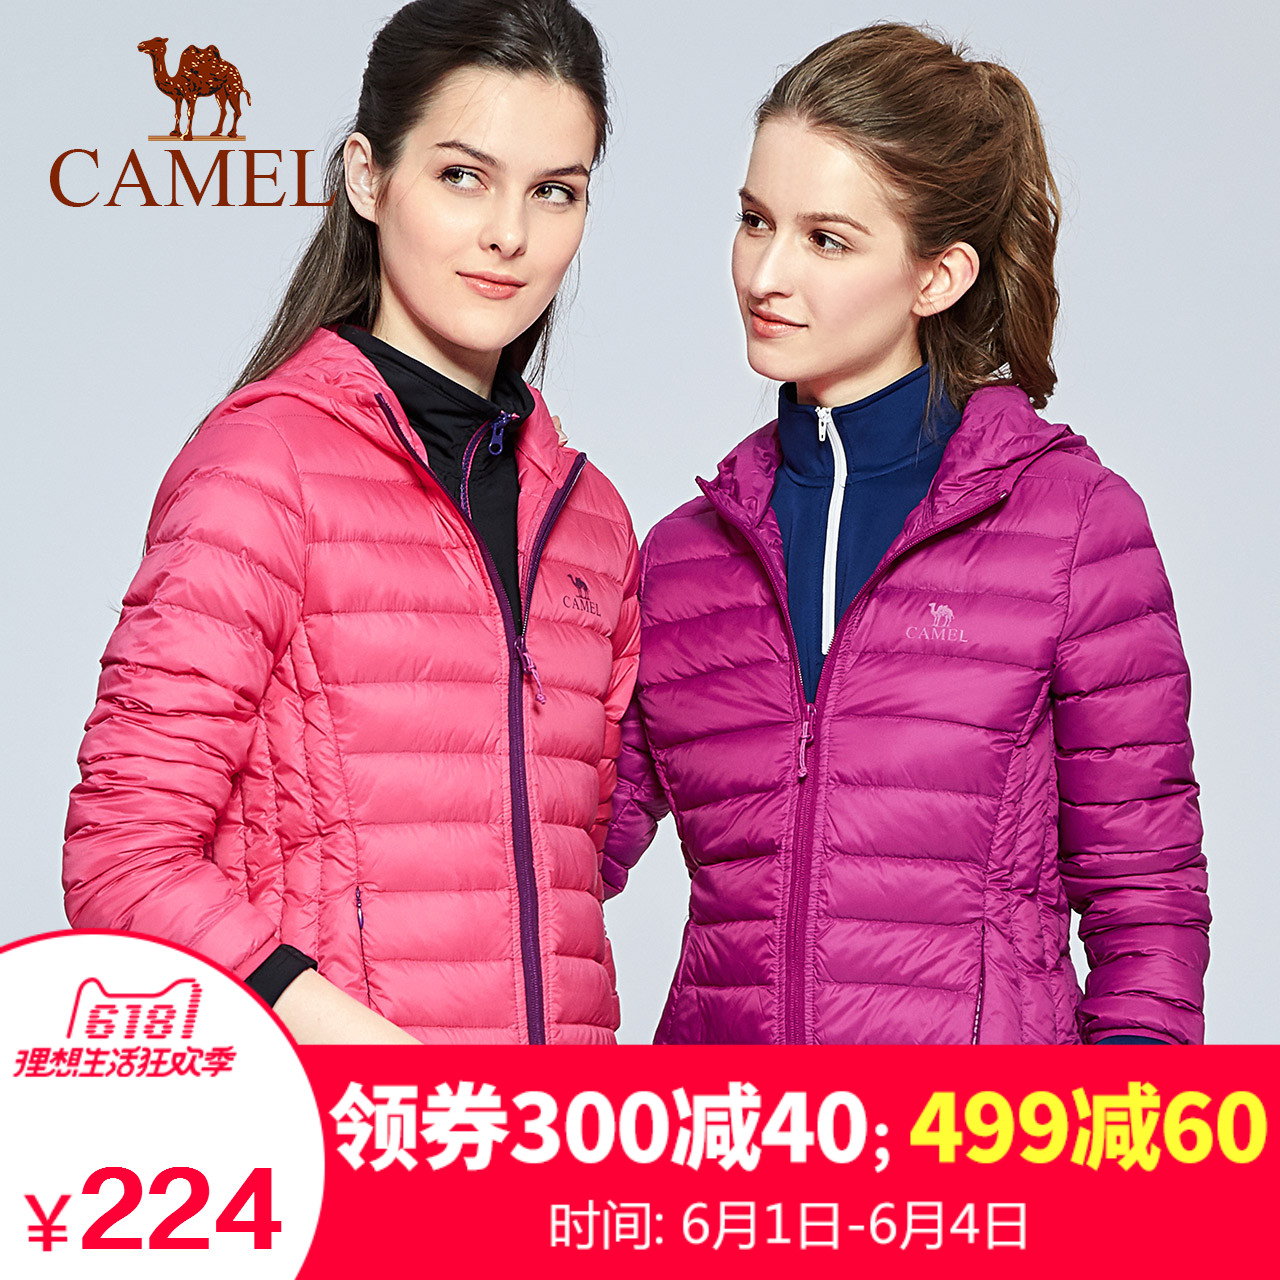 Camel outdoor sport down jacket for men and women with short light and warm down jacket for winter